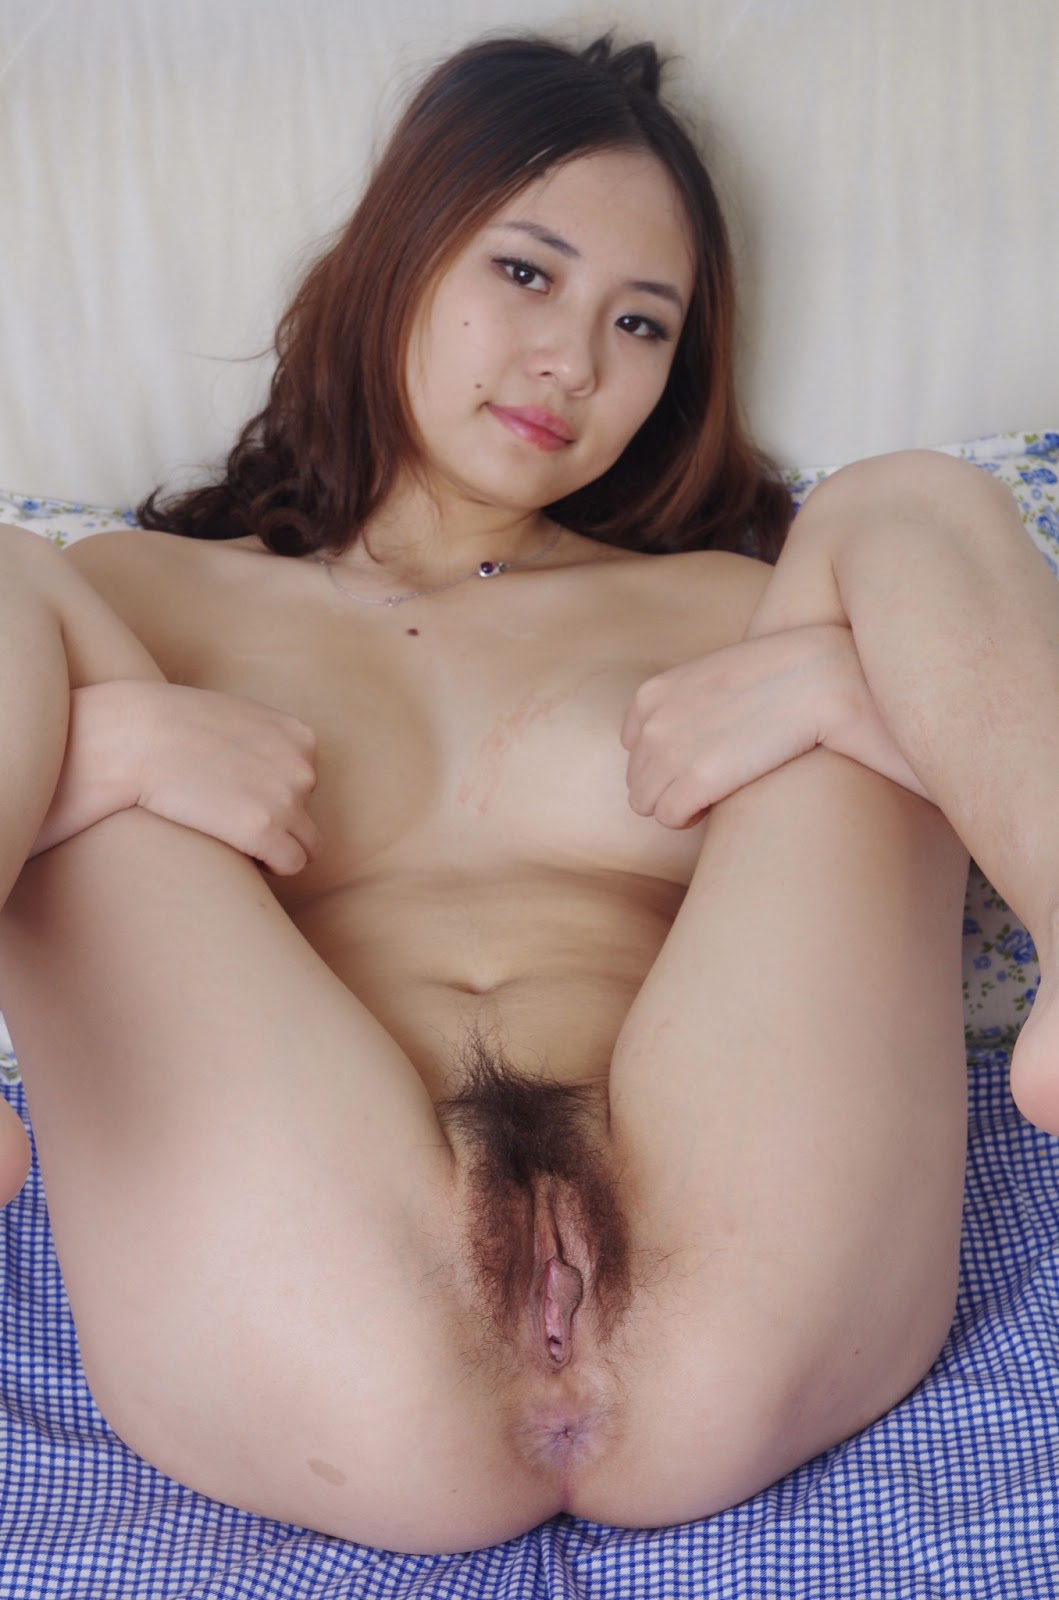 naked cute girl